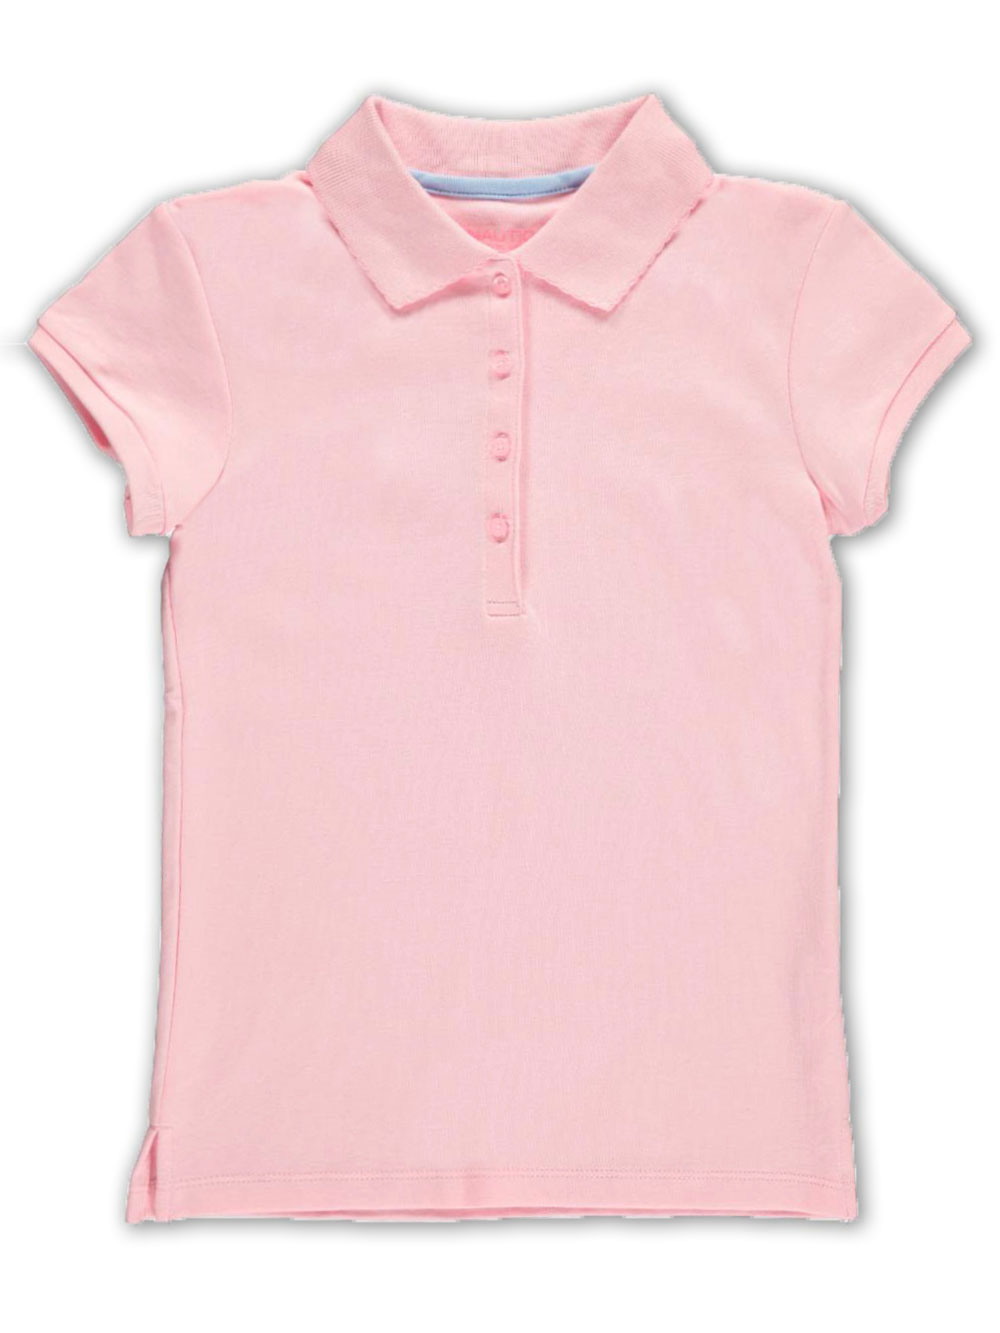 248d5835 Nautica Big Girls' Knit Polo with Picot Collar (Sizes 7 – 16)